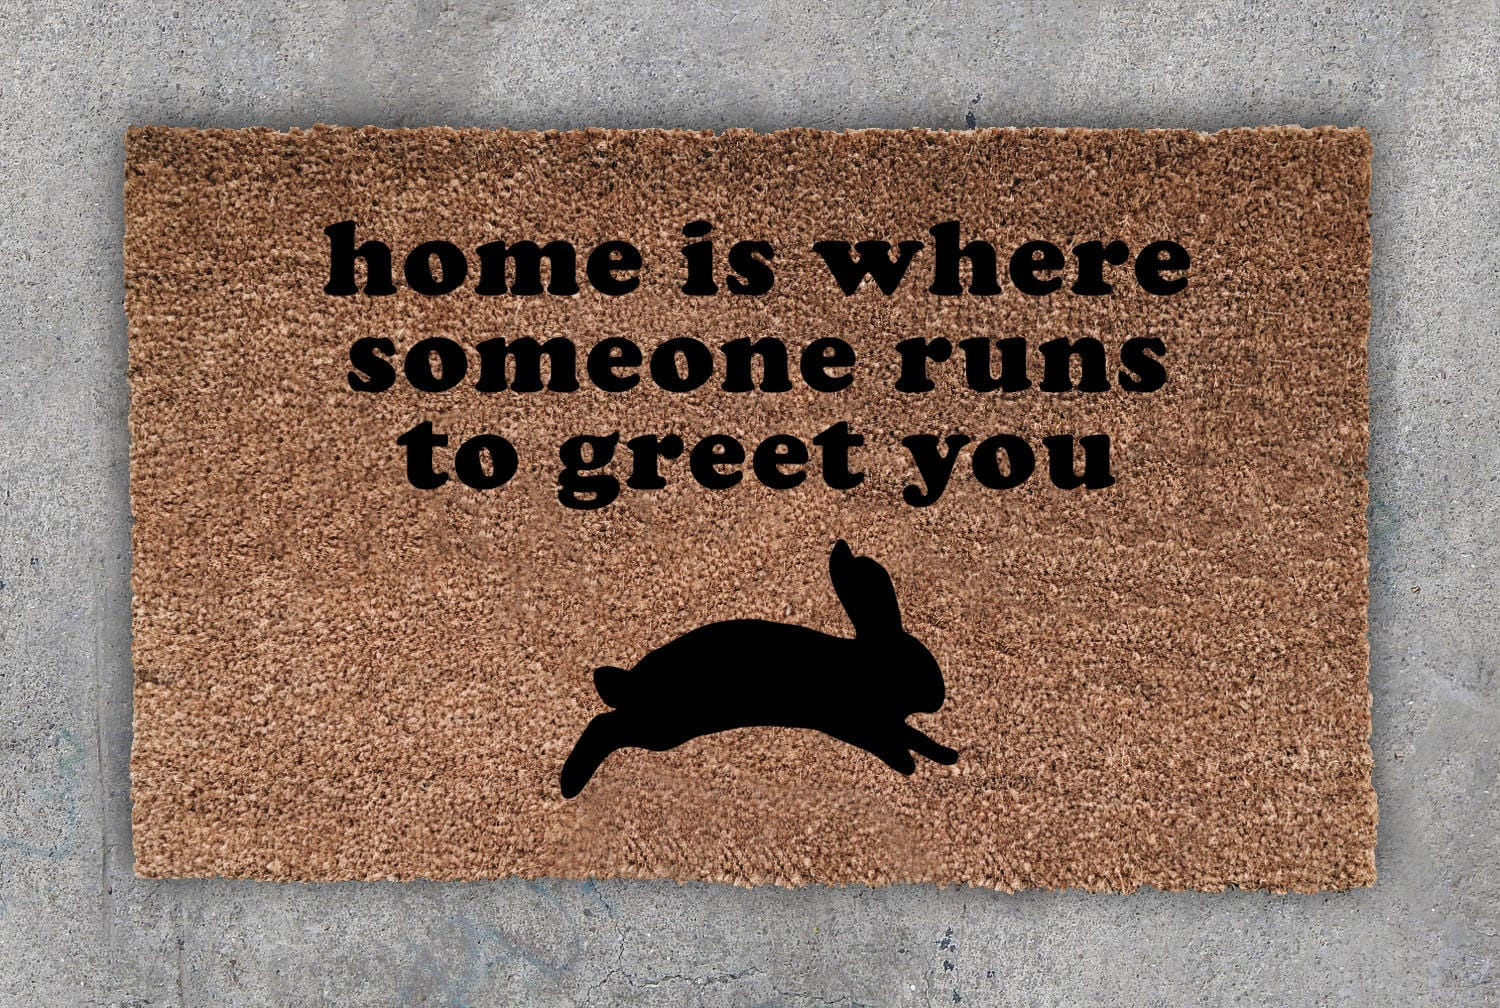 Home Is Where Someone Runs To Greet You Doormat Rabbit